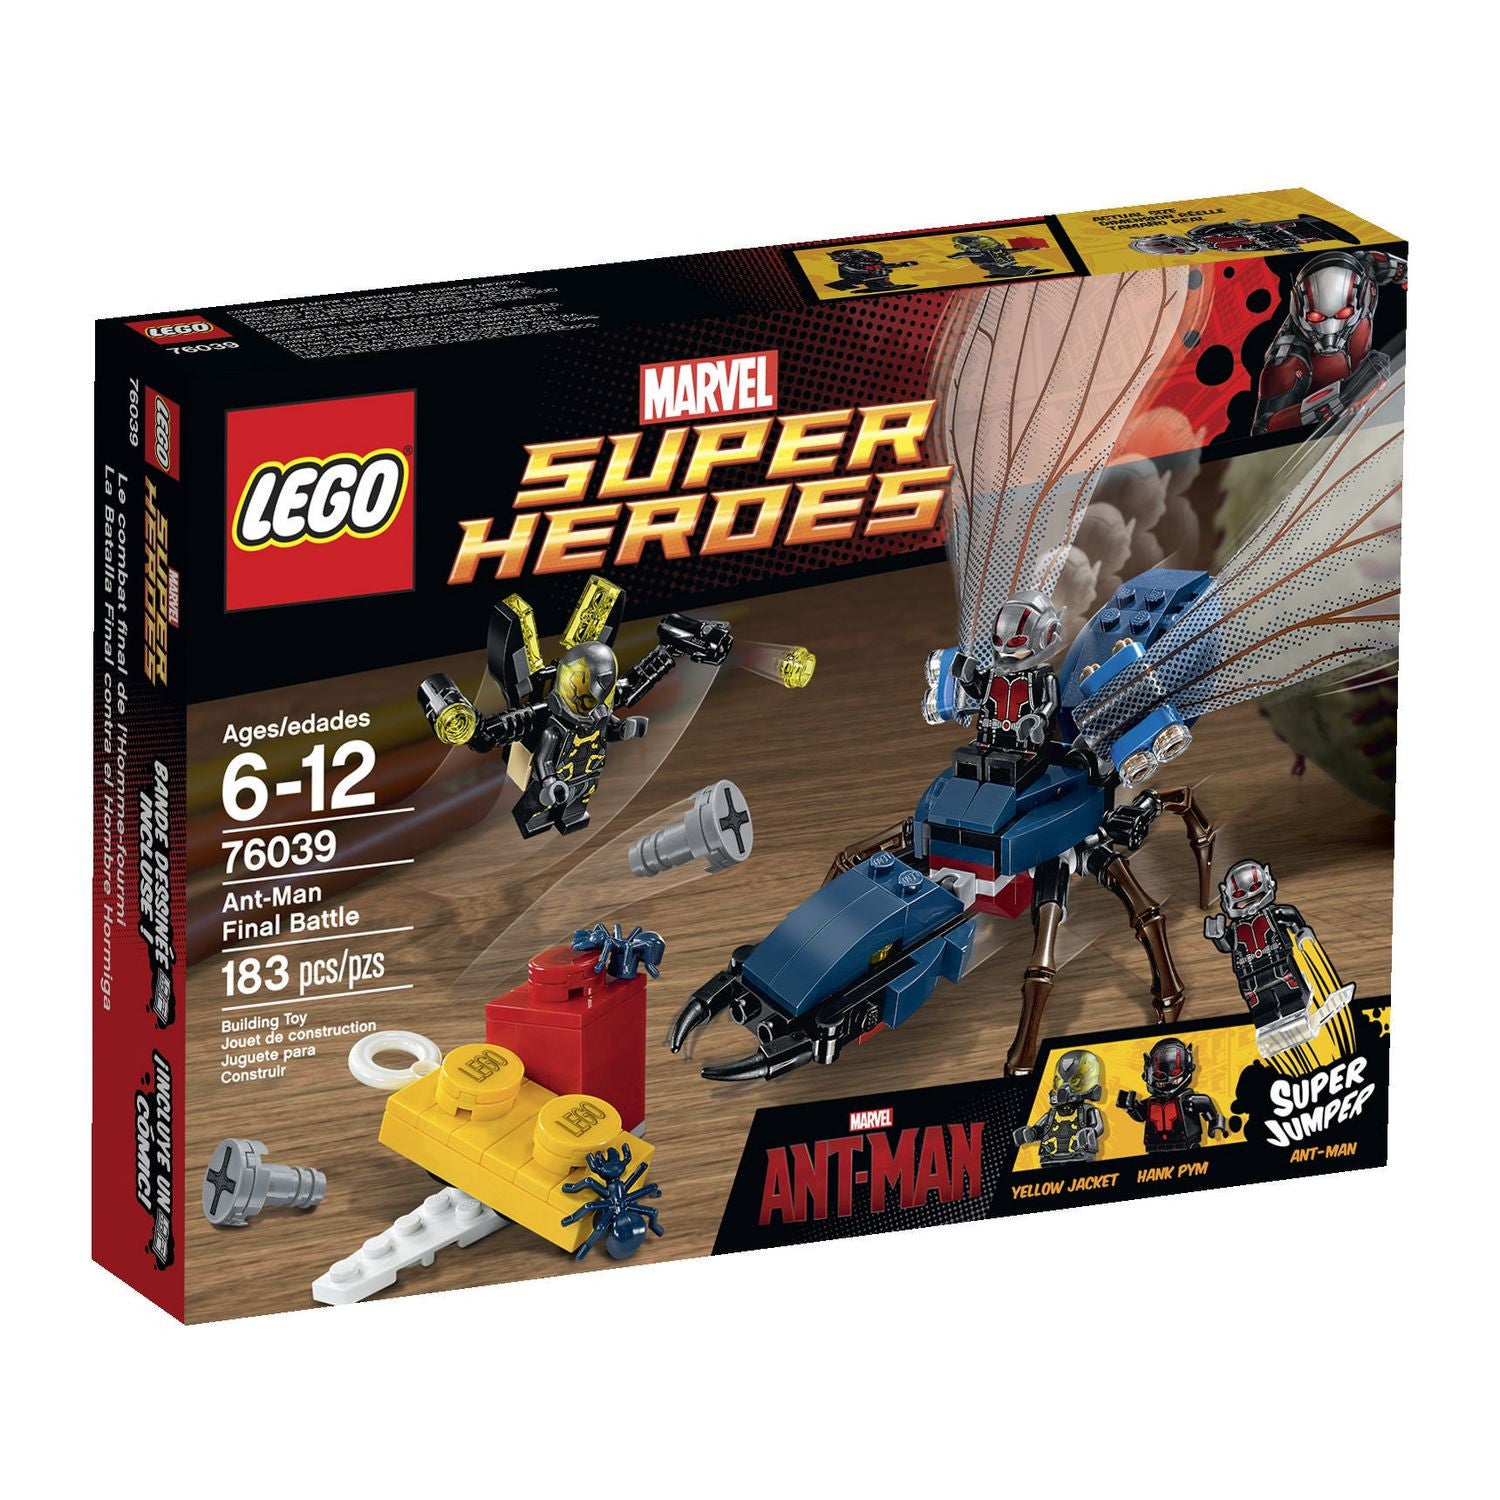 LEGO Marvel Super Heroes - Ant-Man Final Battle (76039)